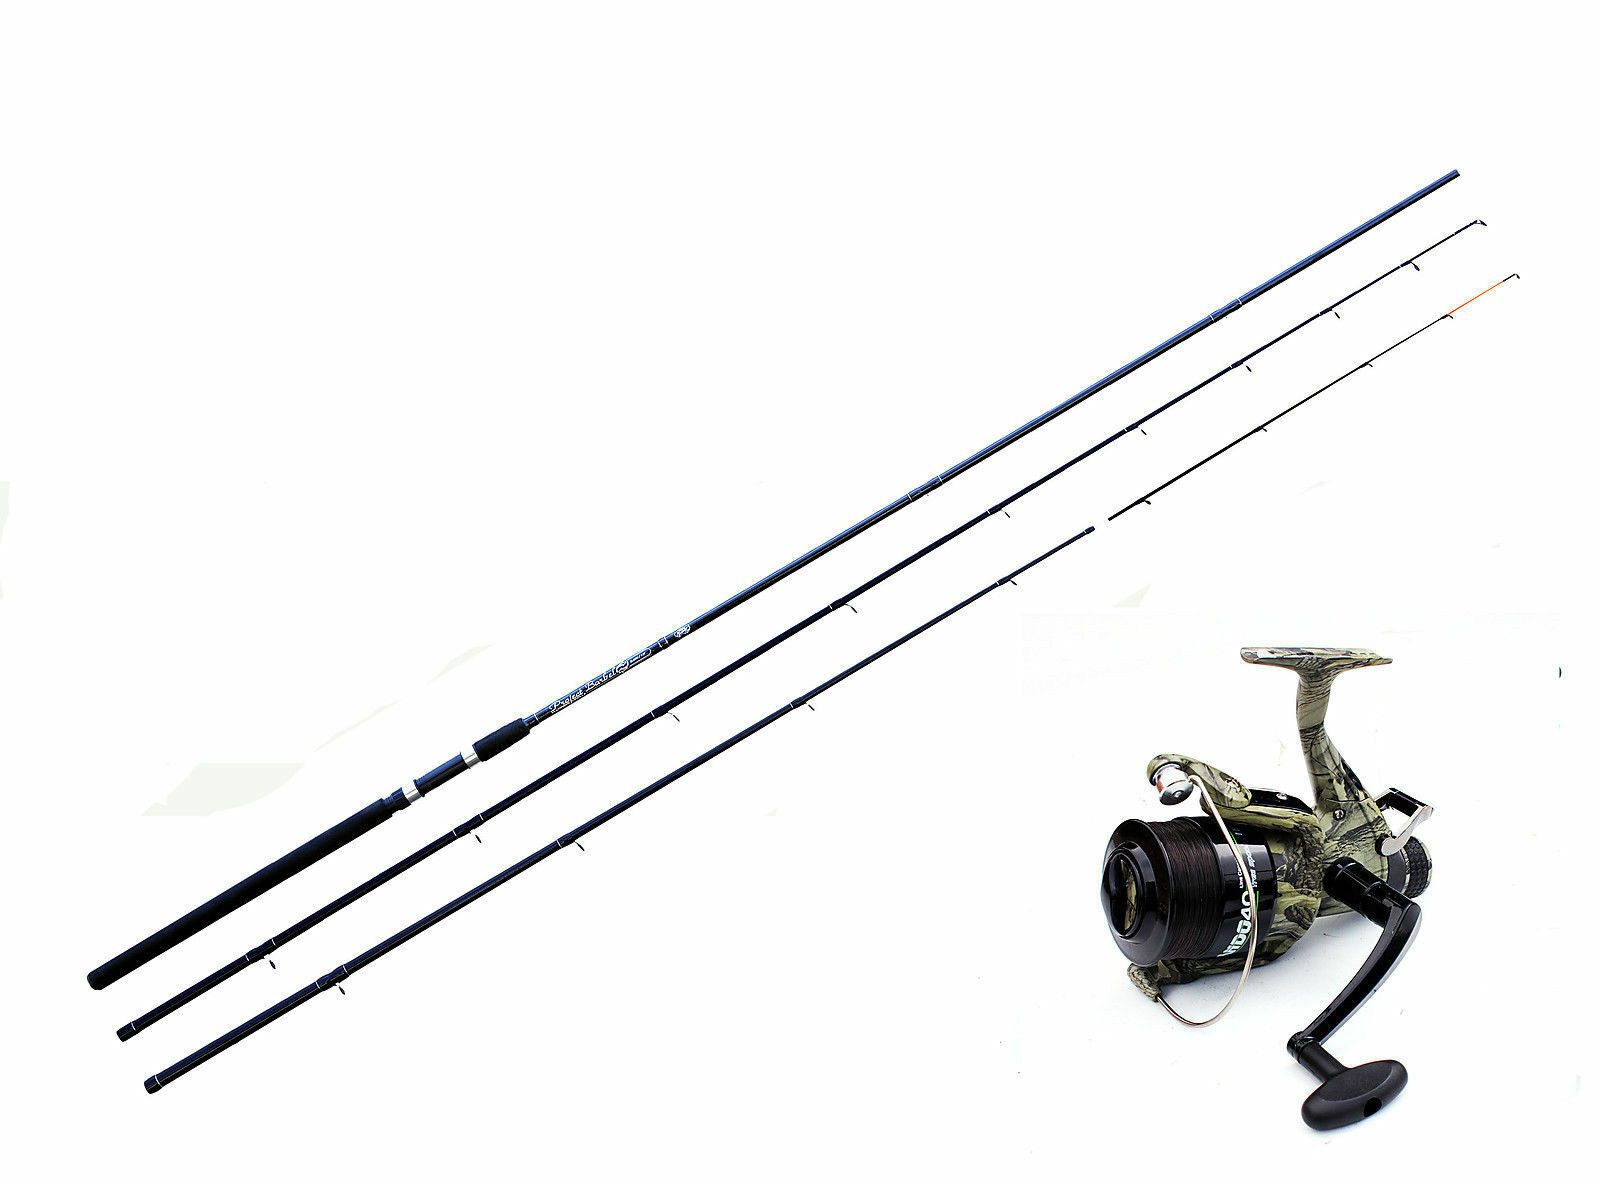 Project 11 Ft Barbel Rod Avon + Quiver Tips + Camo Freespool Reel 040 with Line